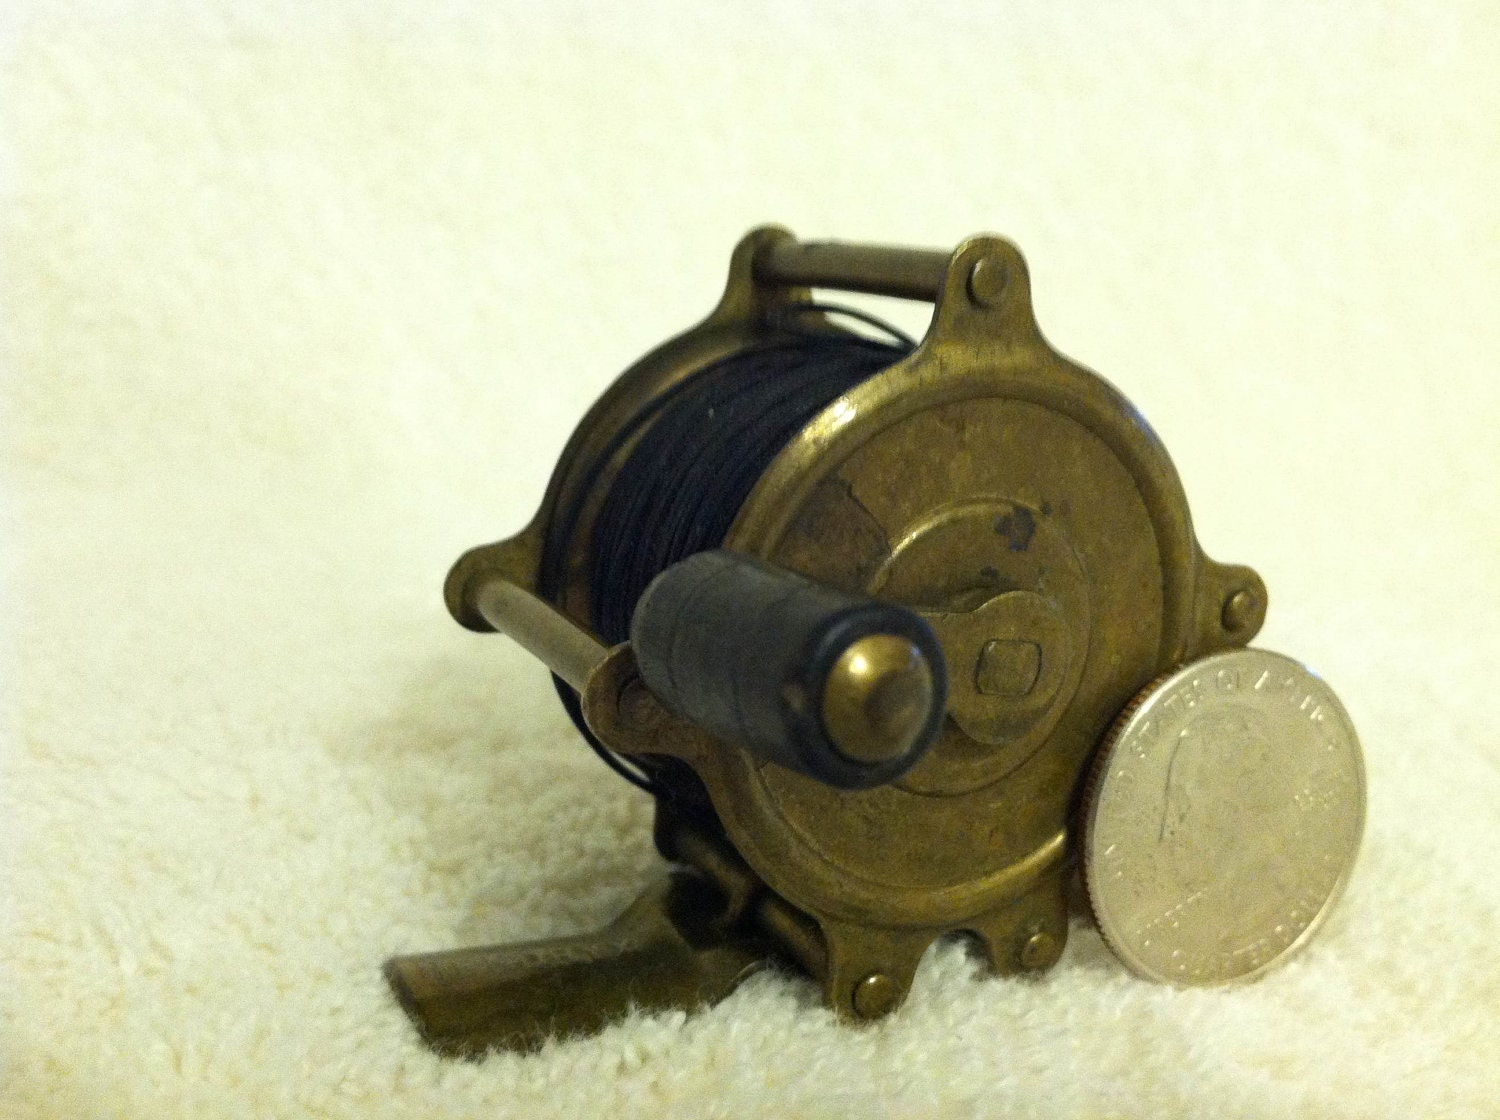 Vintage brass fly fishing reel made by hendryx for Vintage fishing reels